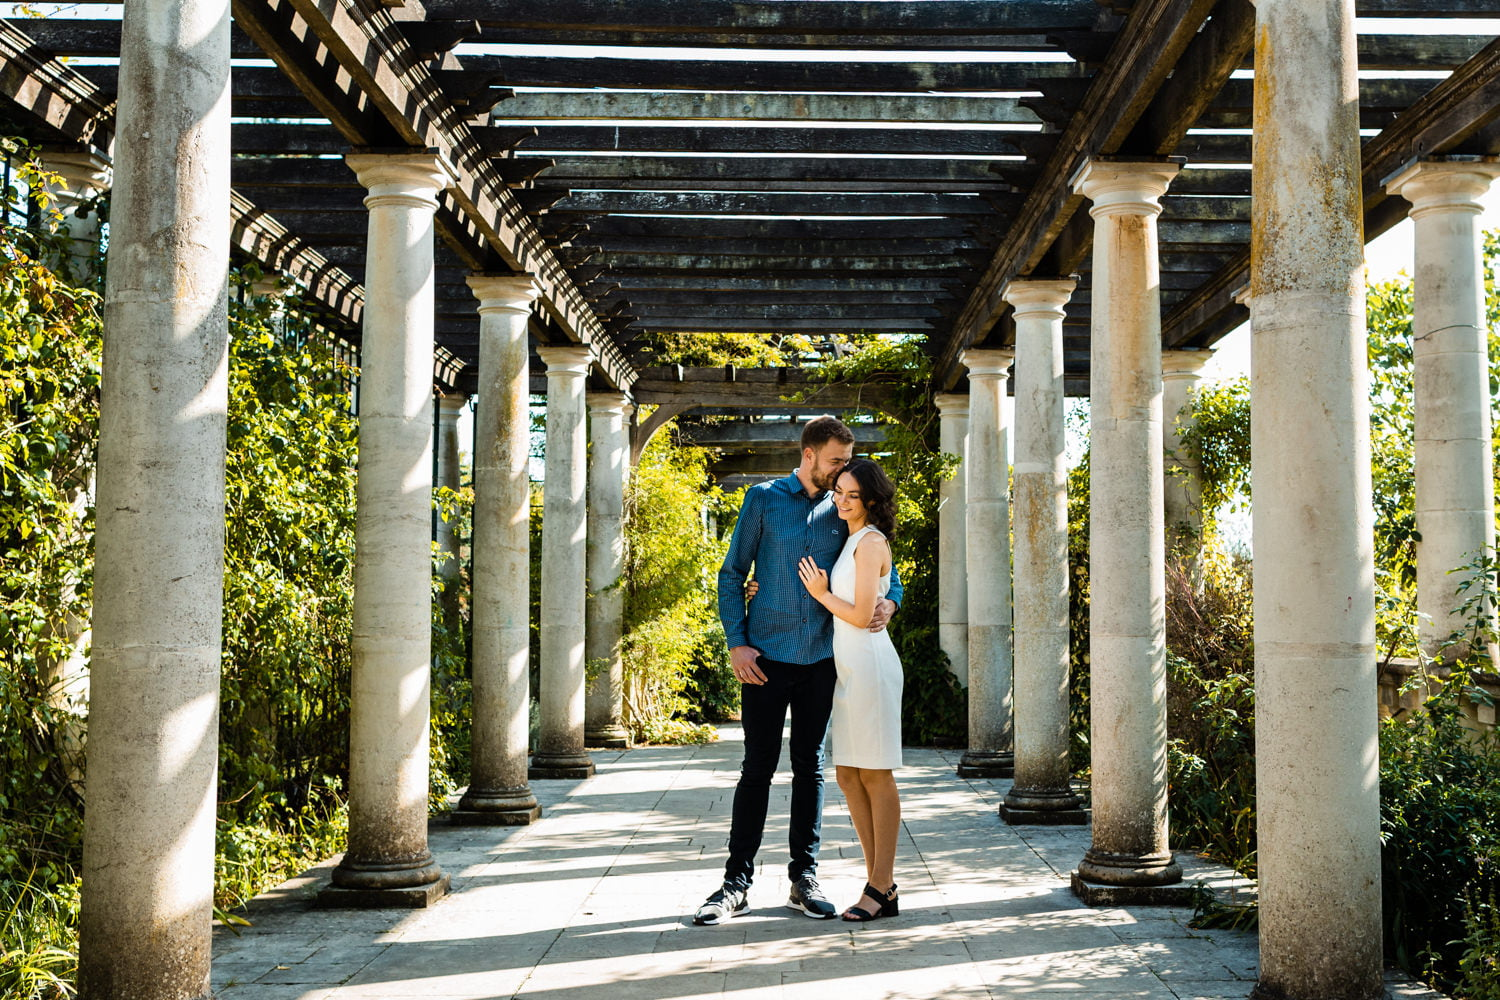 Hampstead Wedding Photographer - Pergola Hill Gardens Engagement Session 7